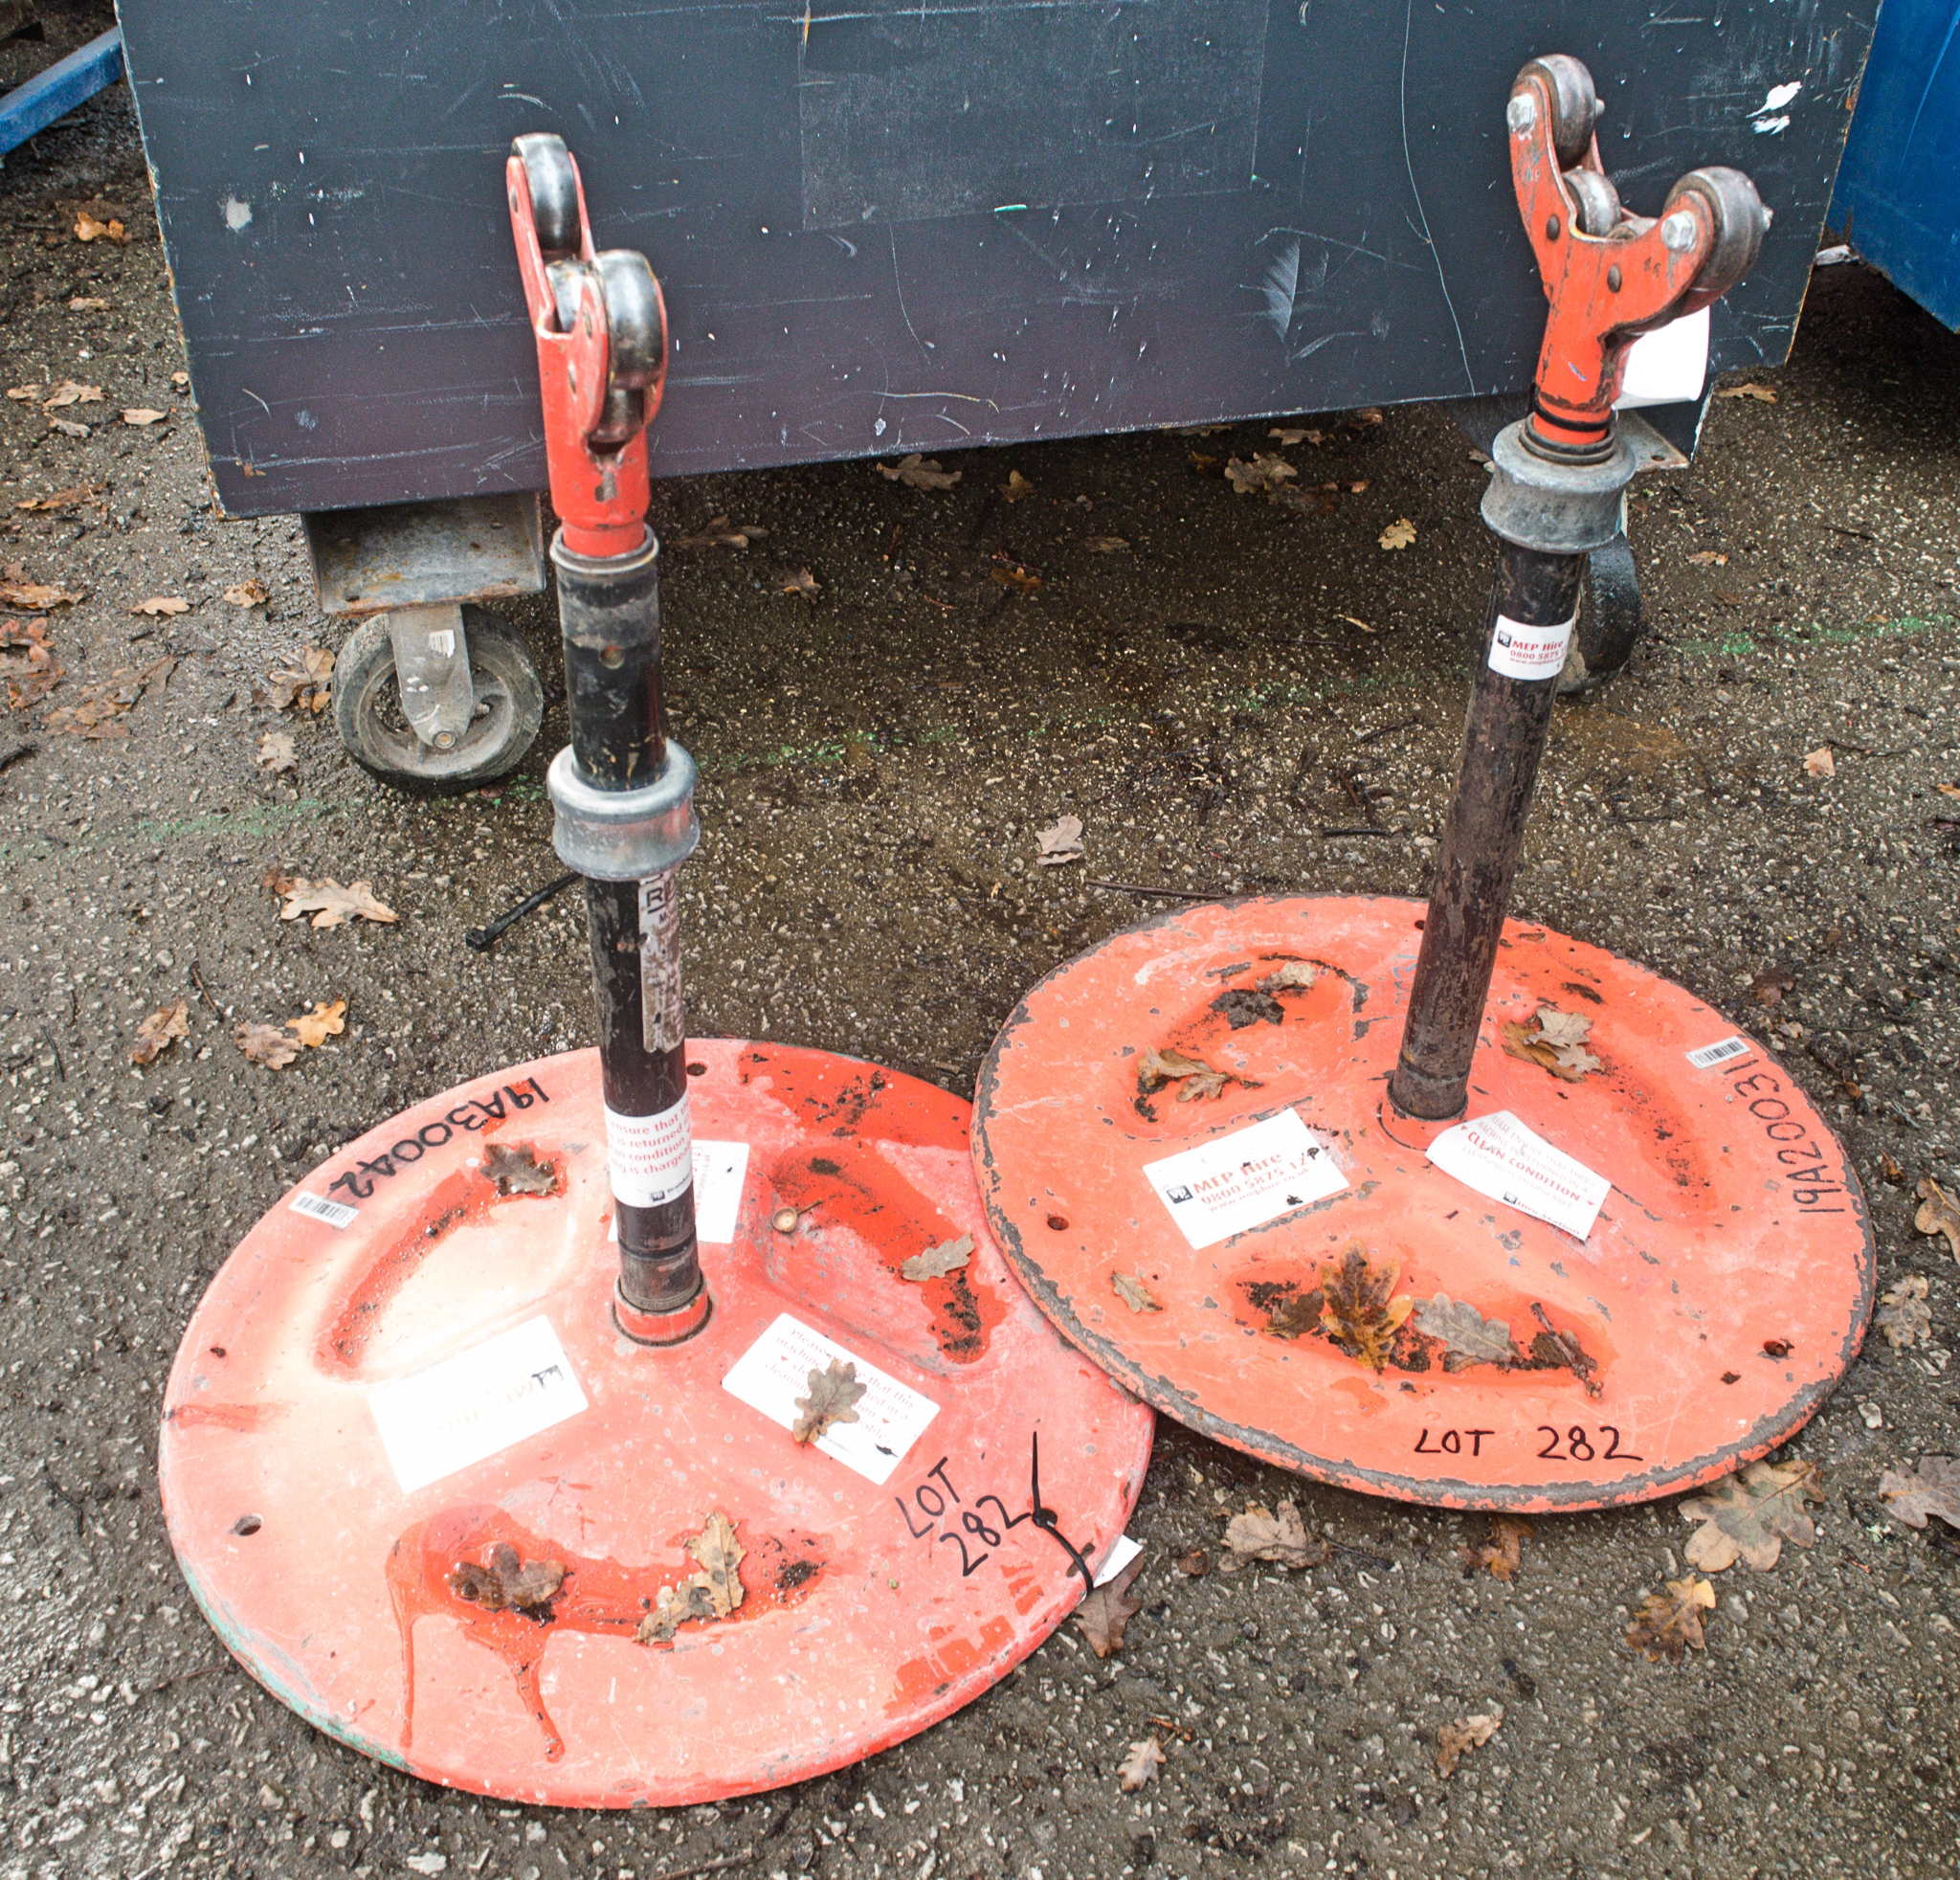 Lot 282 - 2 - Ridgid pipe stand/rollers